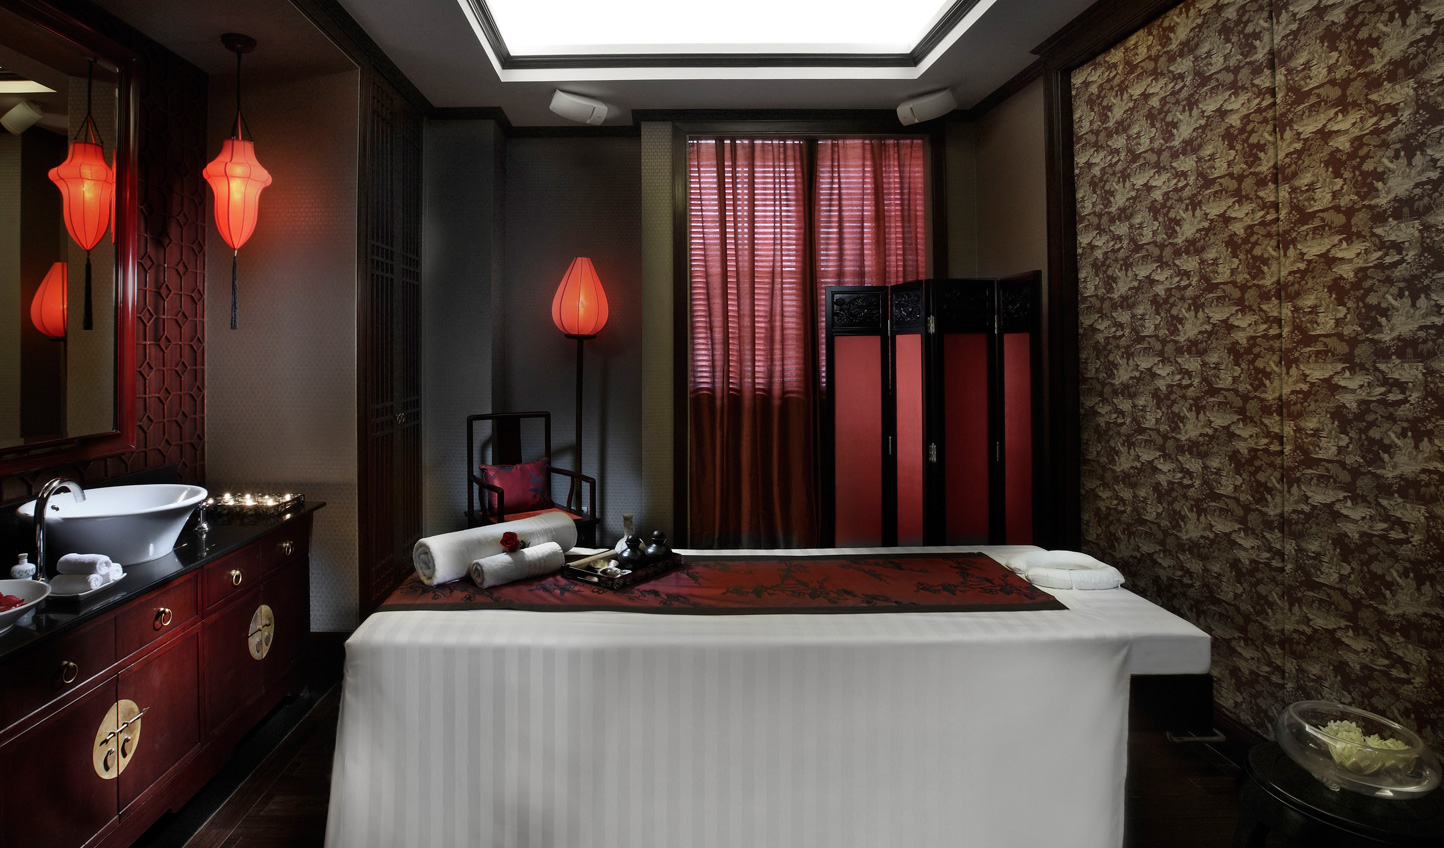 Escape the hustle and bustle of the spa amid the peace and tranquility of the spa